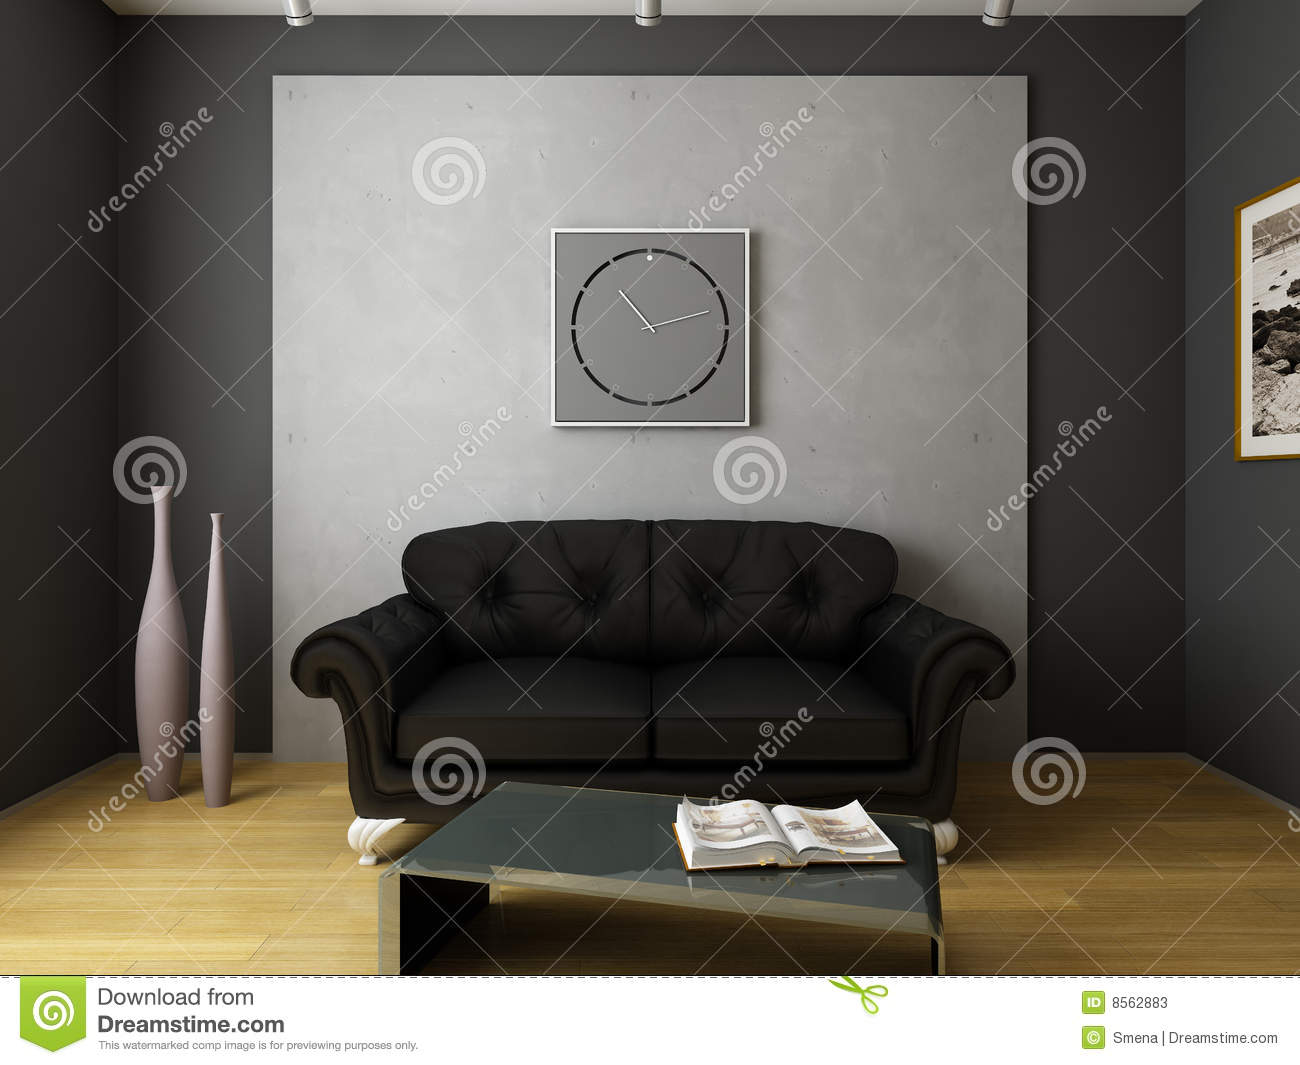 Interior Designers Working Table Stock Photo - Image: 59300771